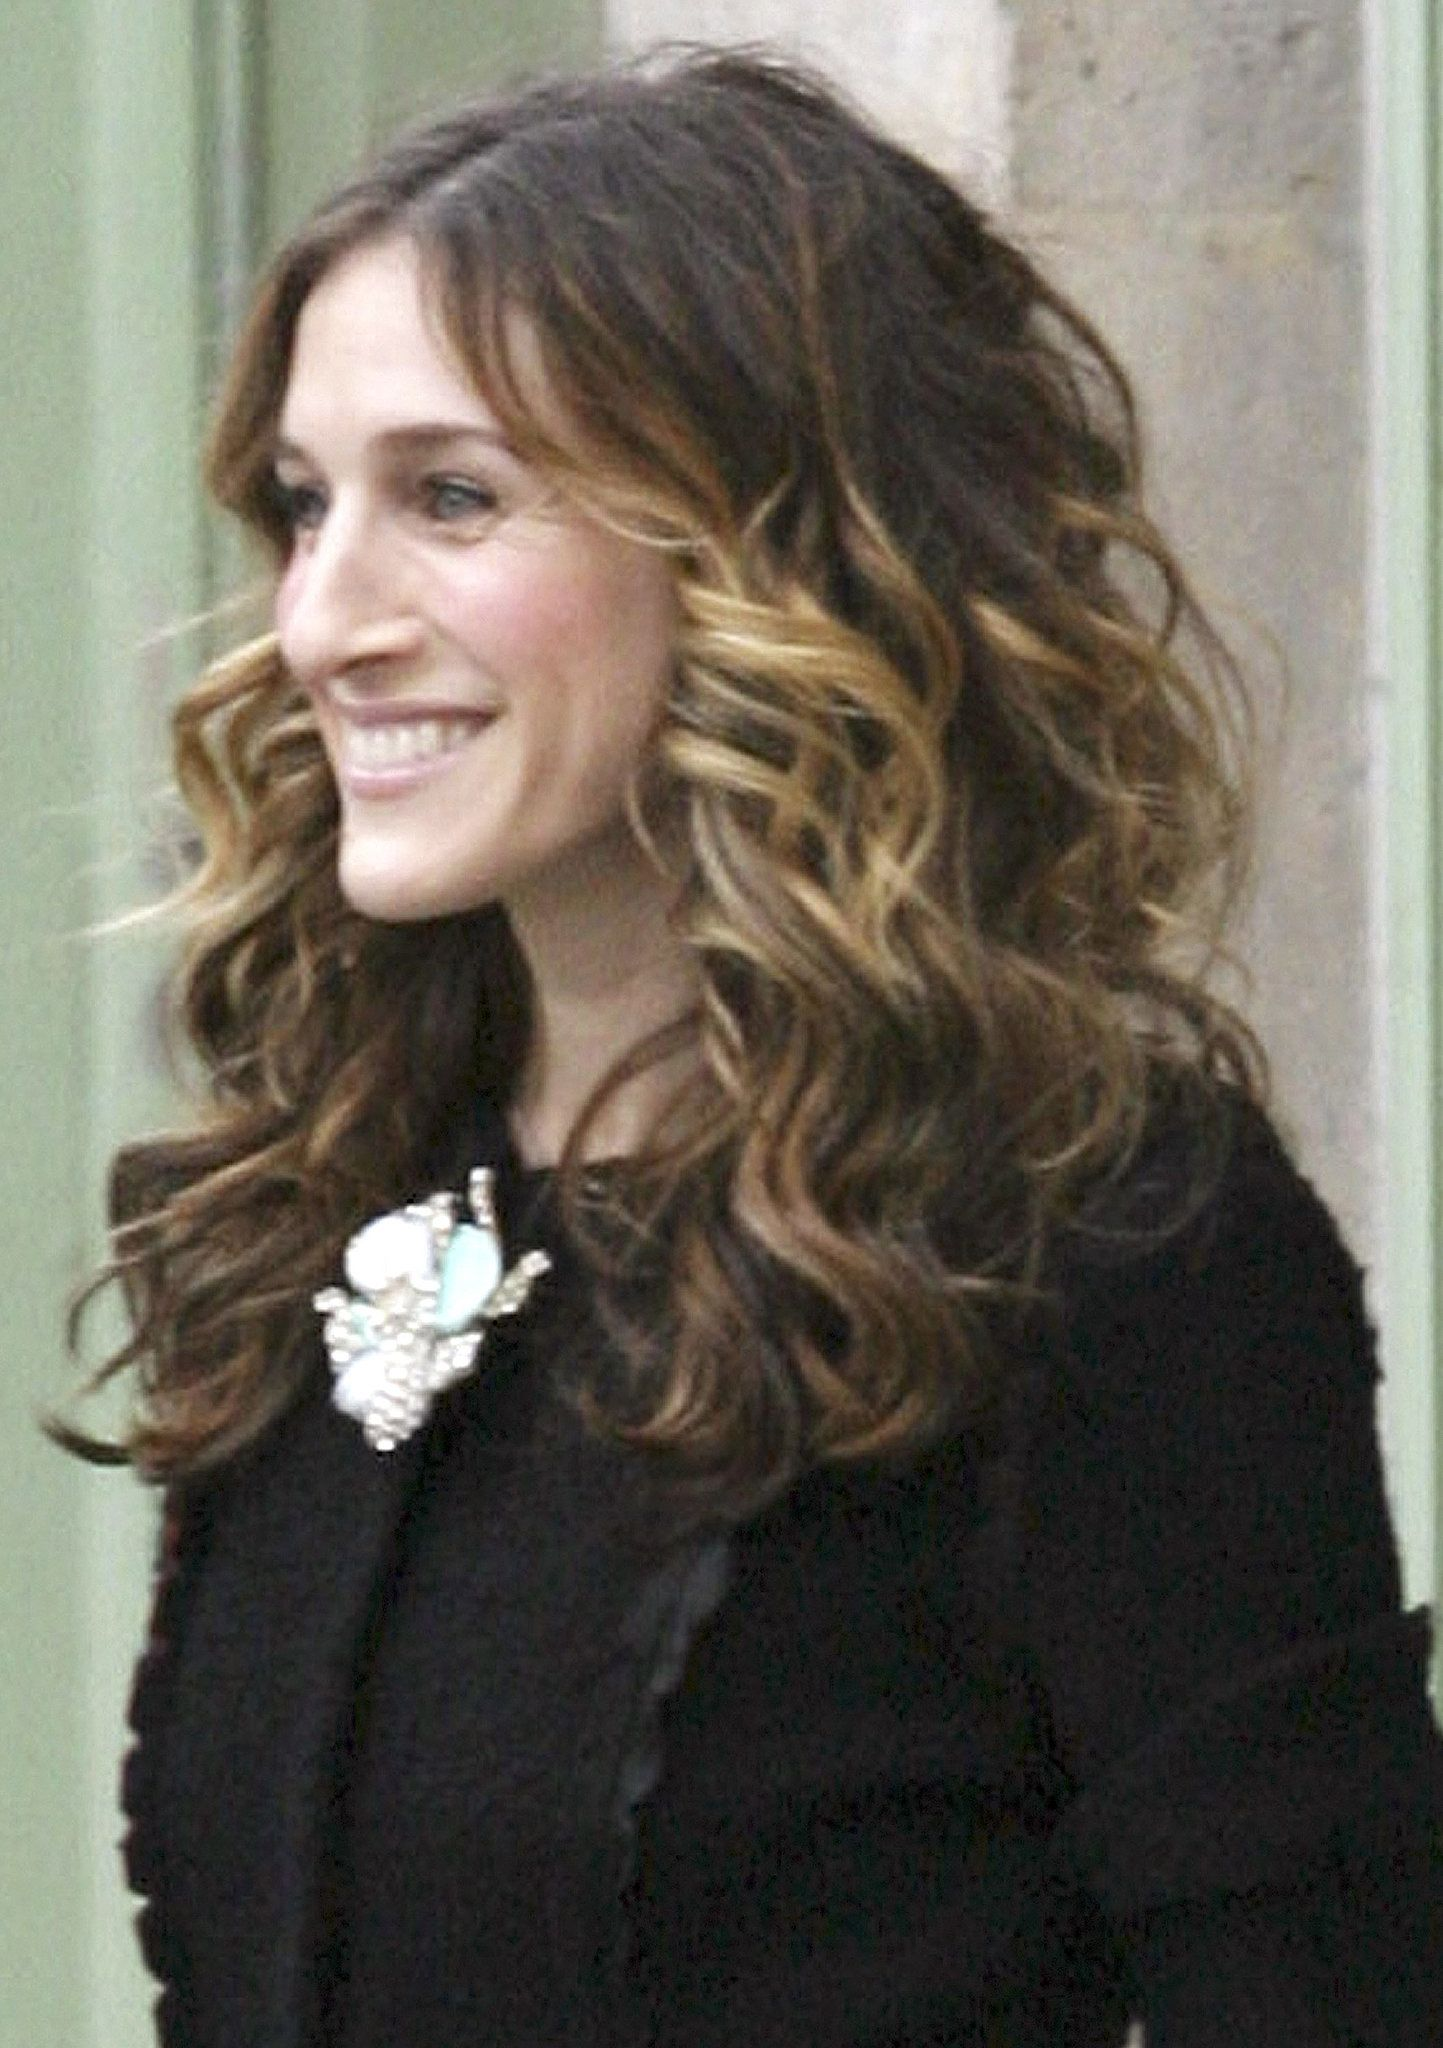 Here In The Series Finale A Head Full Of Curls And A Neutral Makeup The Many Styles Of Carrie Bradshaw S Iconic Mane Carrie Bradshaw Hair Hair Looks Hair Beauty